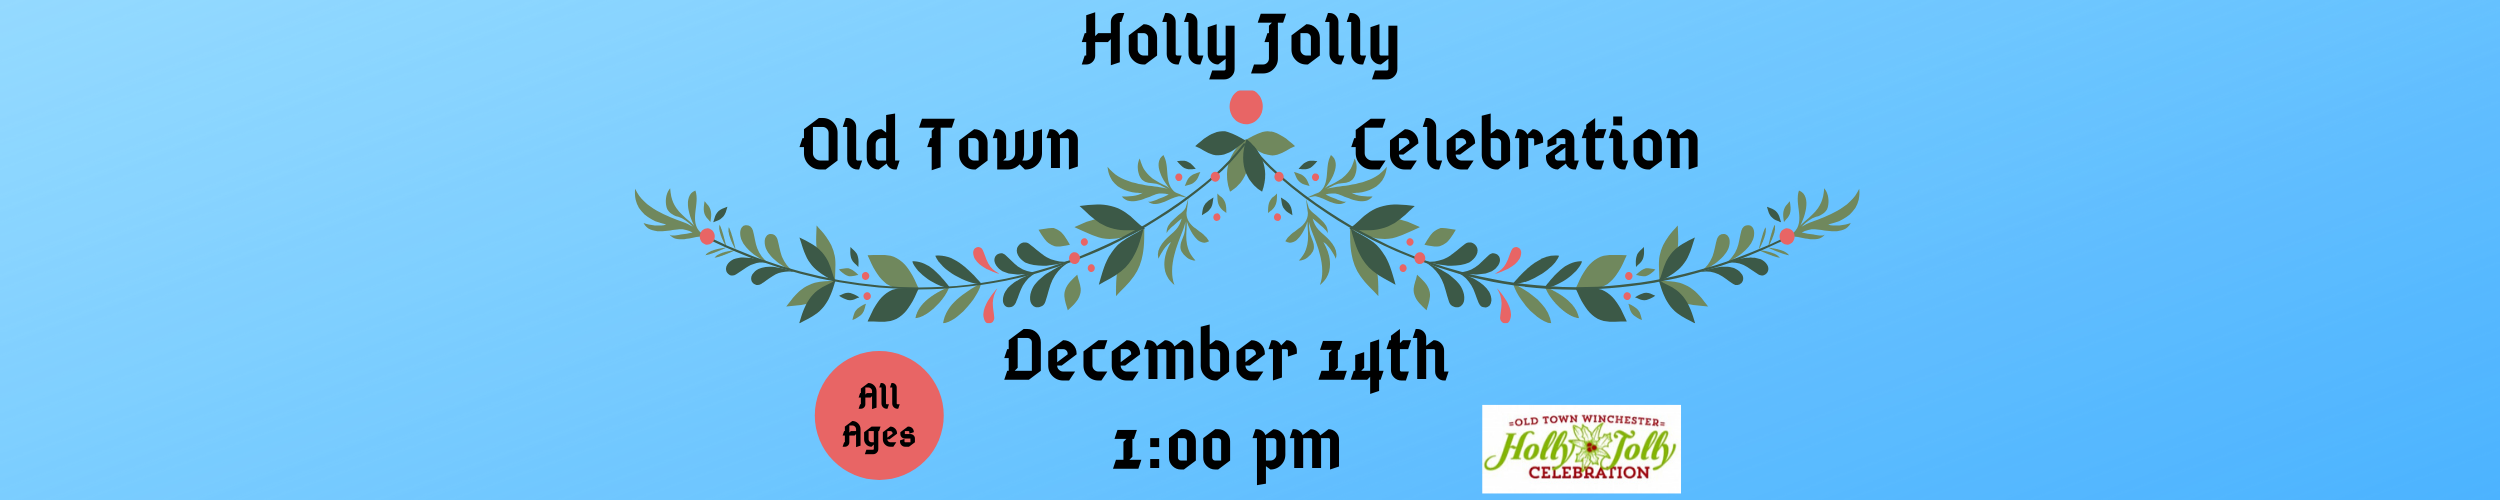 Old Town Holly Jolly slide